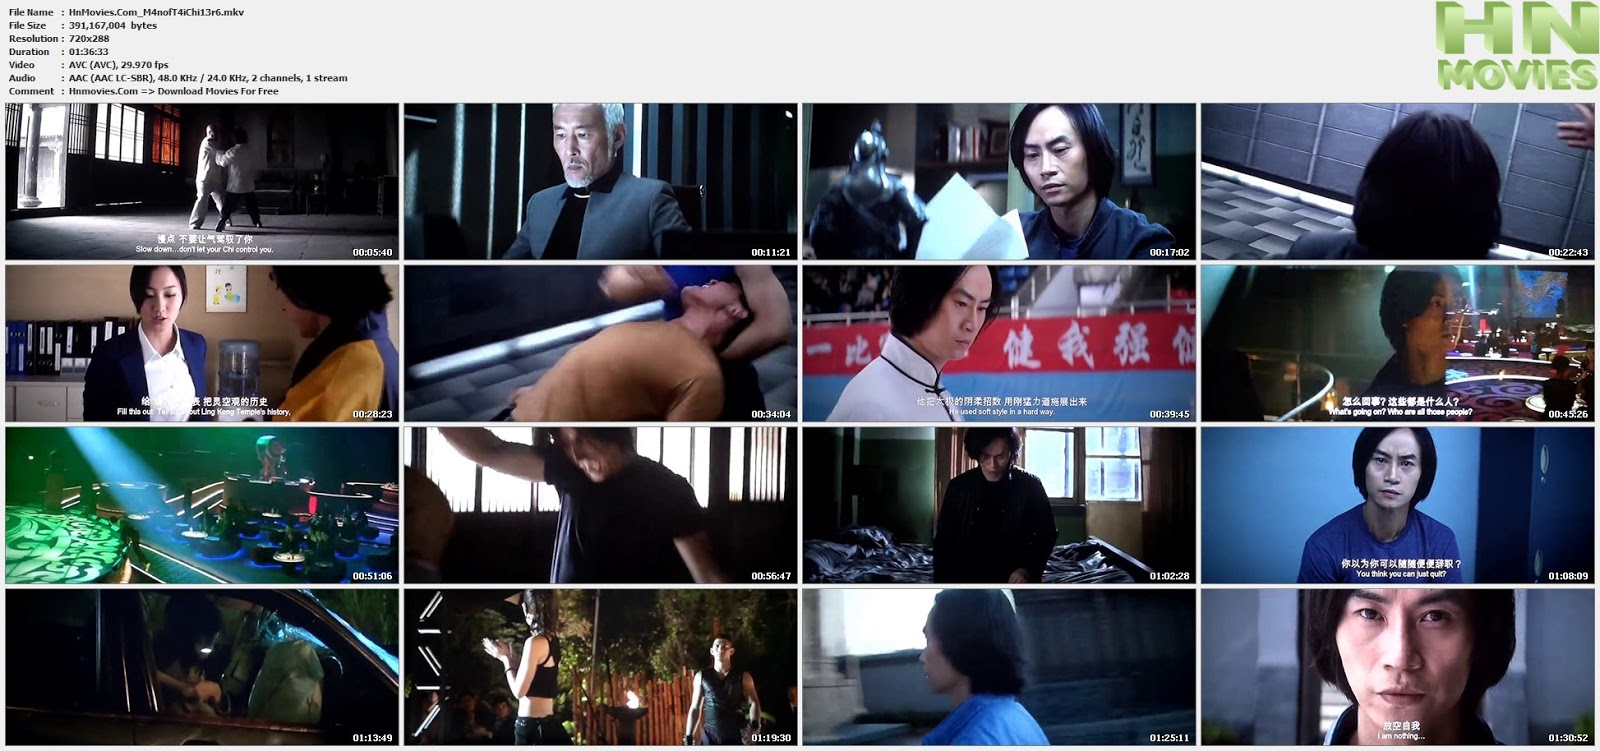 movie screenshot of Man of Tai Chi fdmovie.com